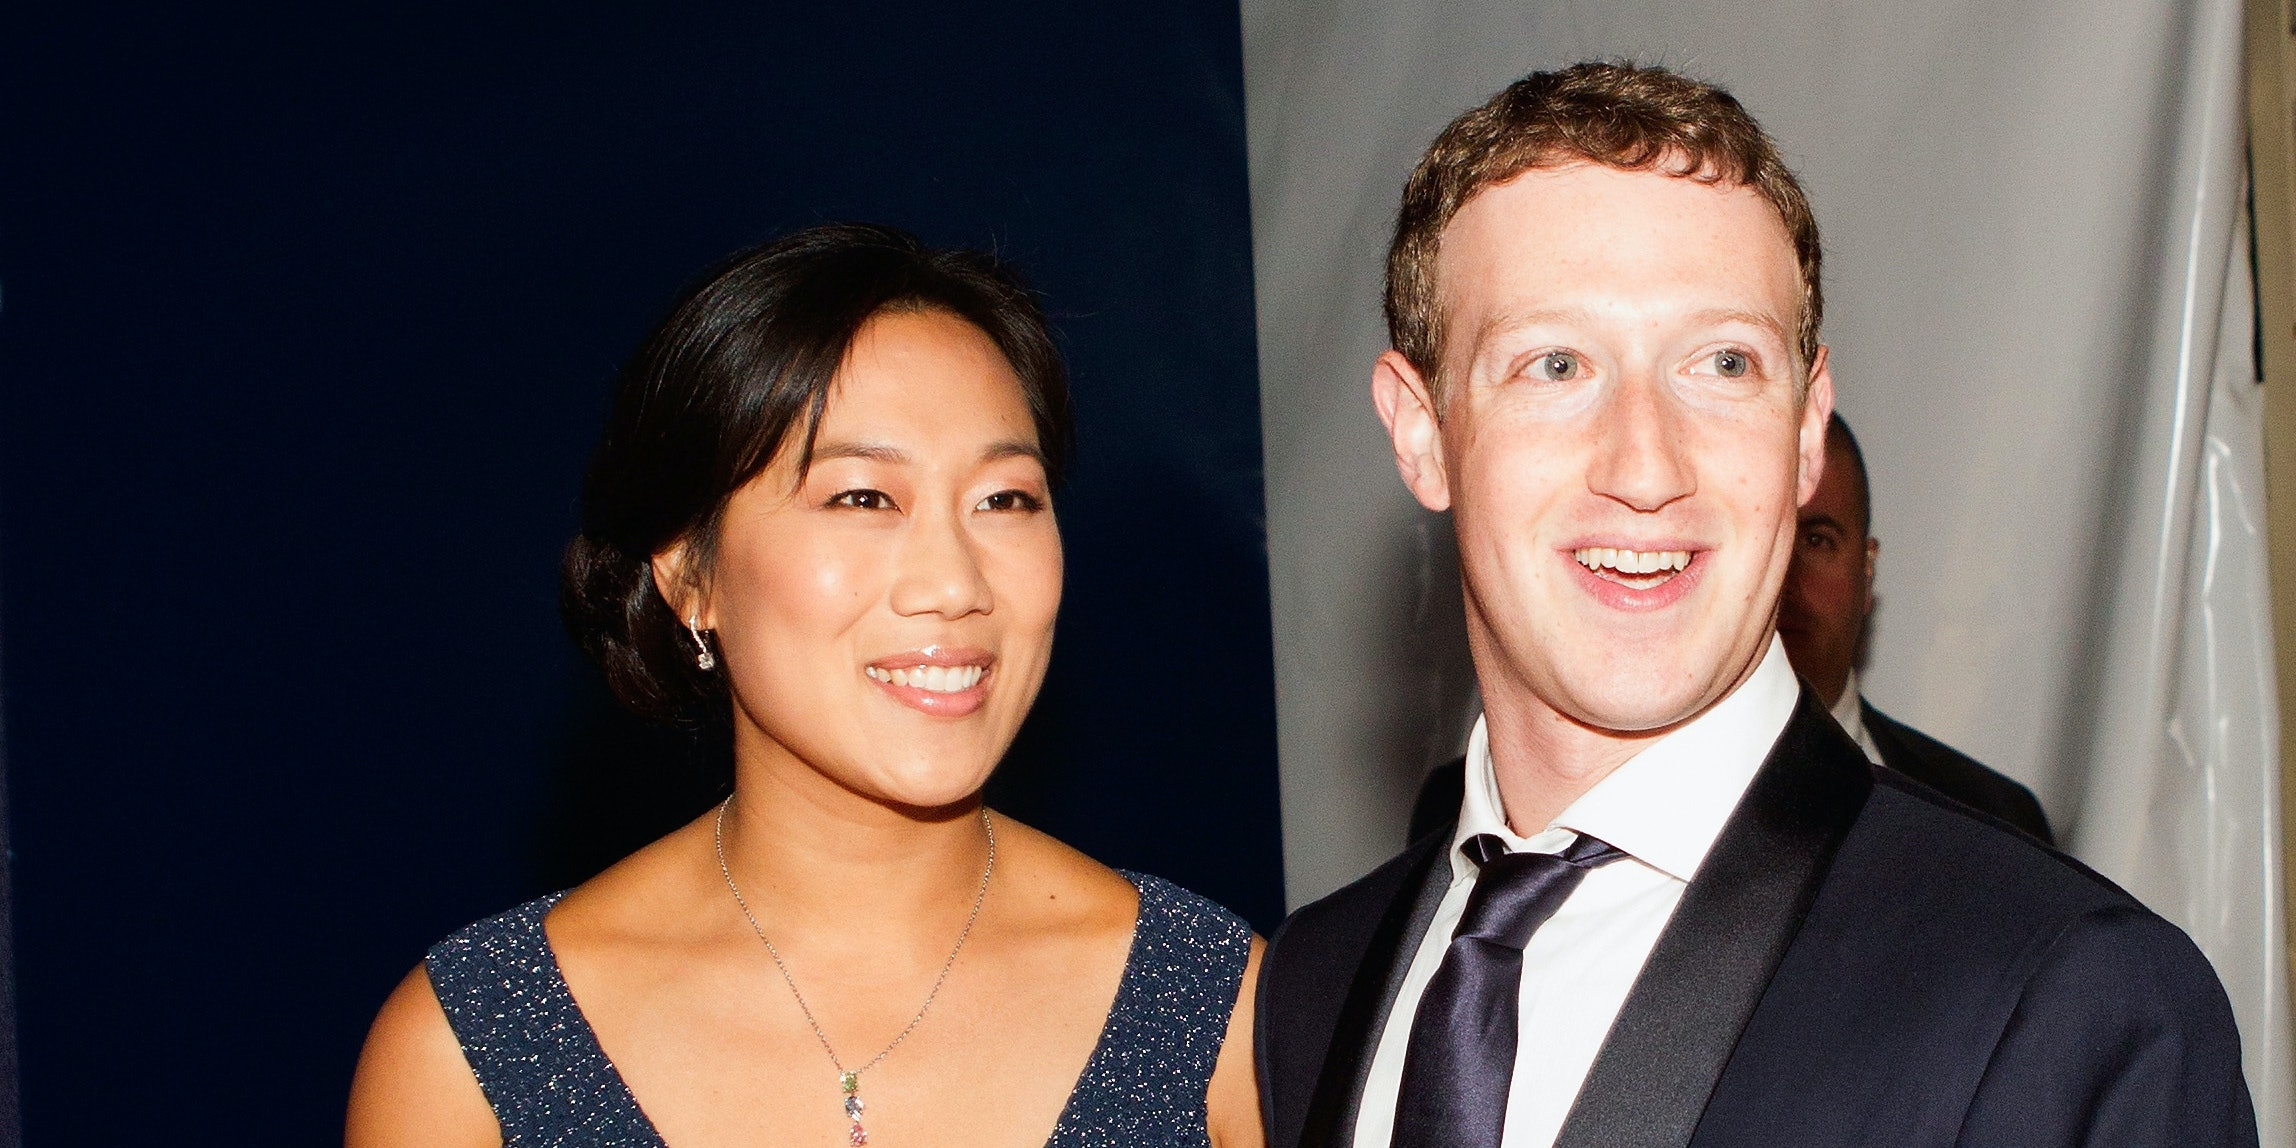 Chan and Zuck Hope to Eradicate Disease This Century